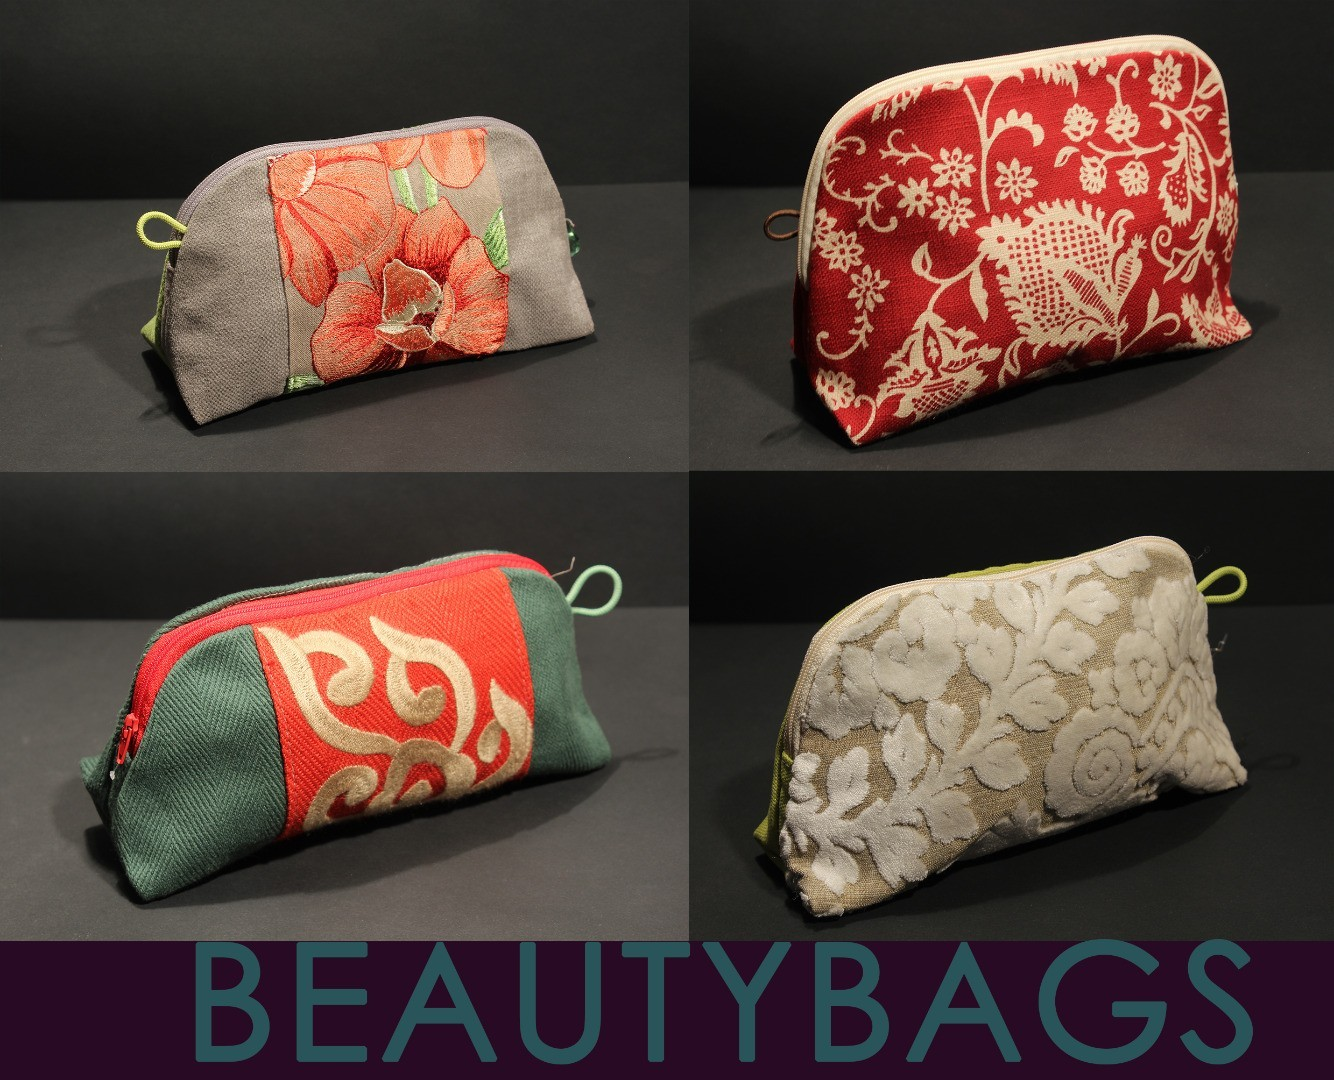 BEAUTYBAGS.jpg